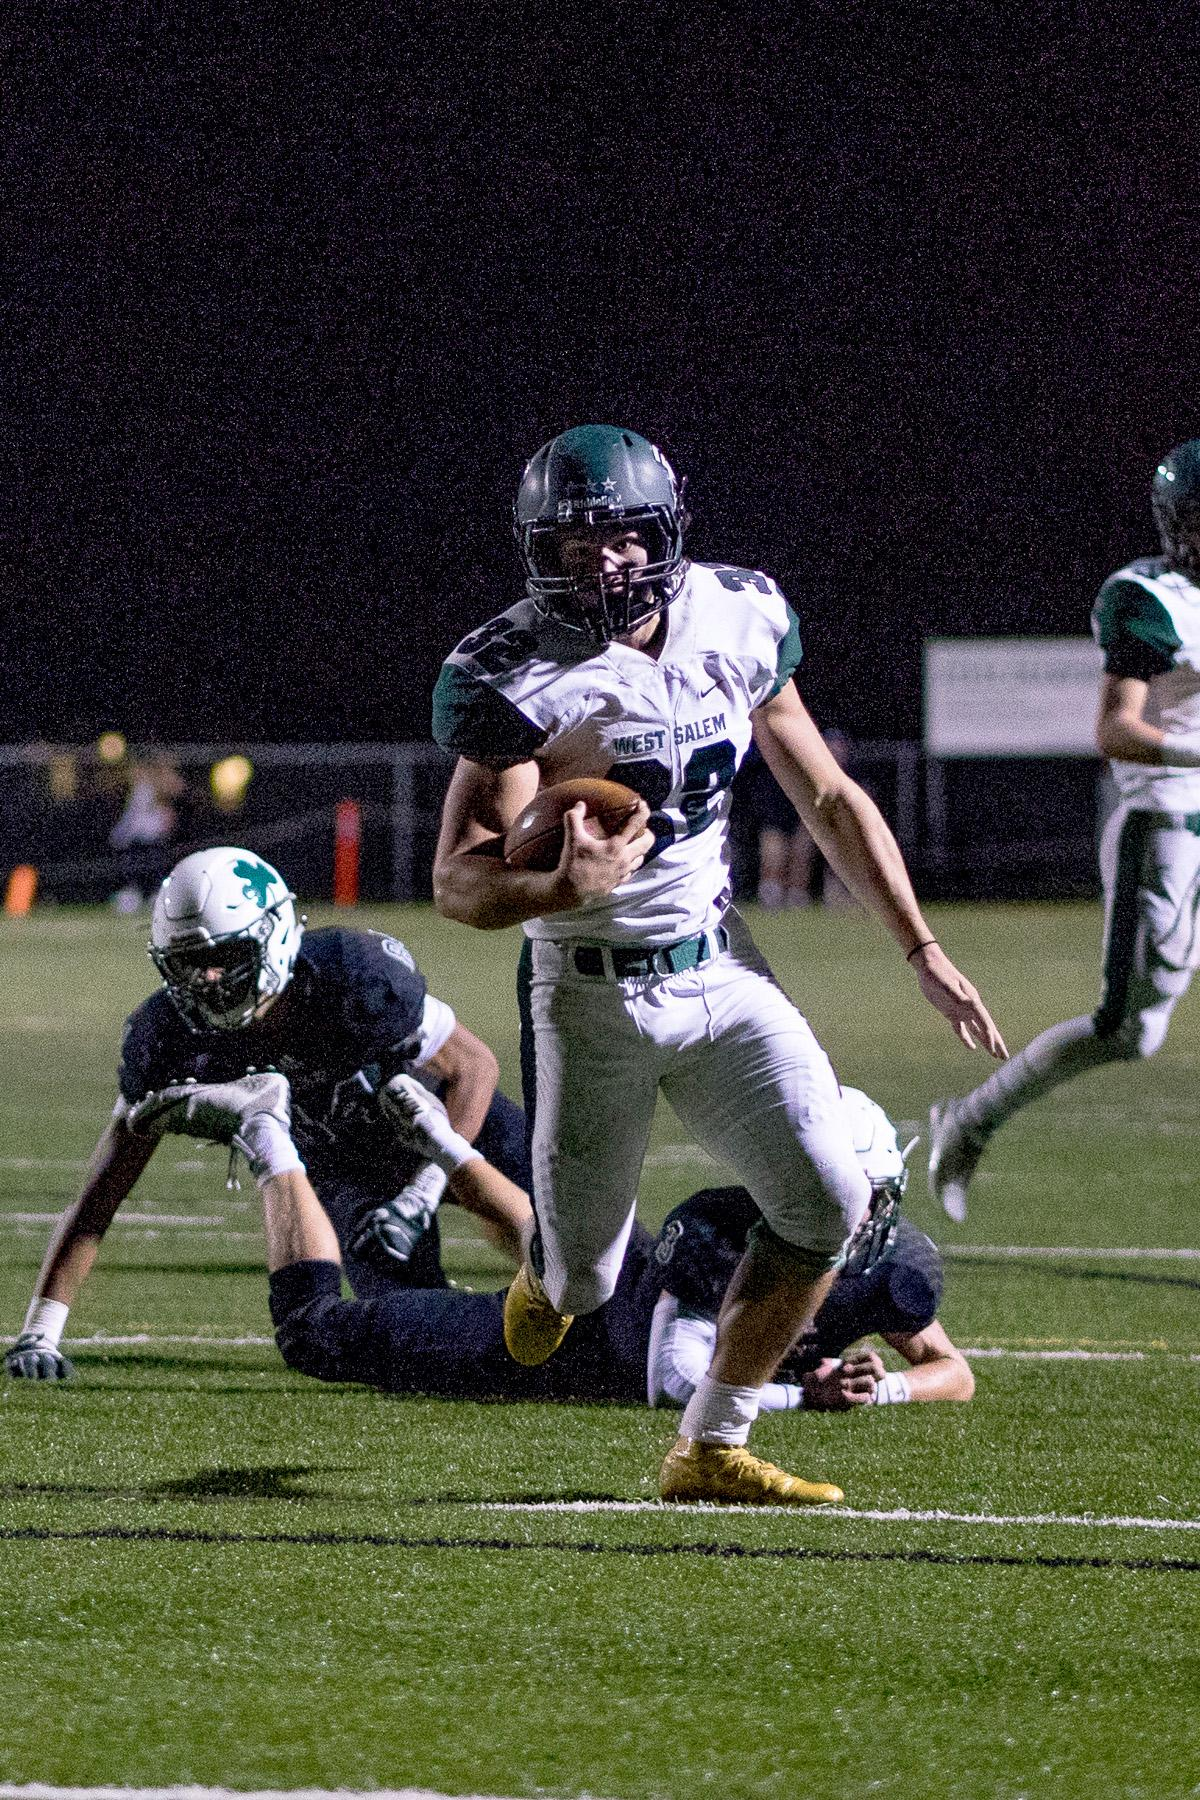 West Salem Titan Ryan Baxter (#32) runs the ball. On a rainy Monday evening, Sheldon defeated West Salem at home 41 – 7. The game had been postponed until Monday, September 18, due to unhealthy levels of smoke in the air caused by nearby forest fires. Photo by Kit MacAvoy, Oregon News Lab